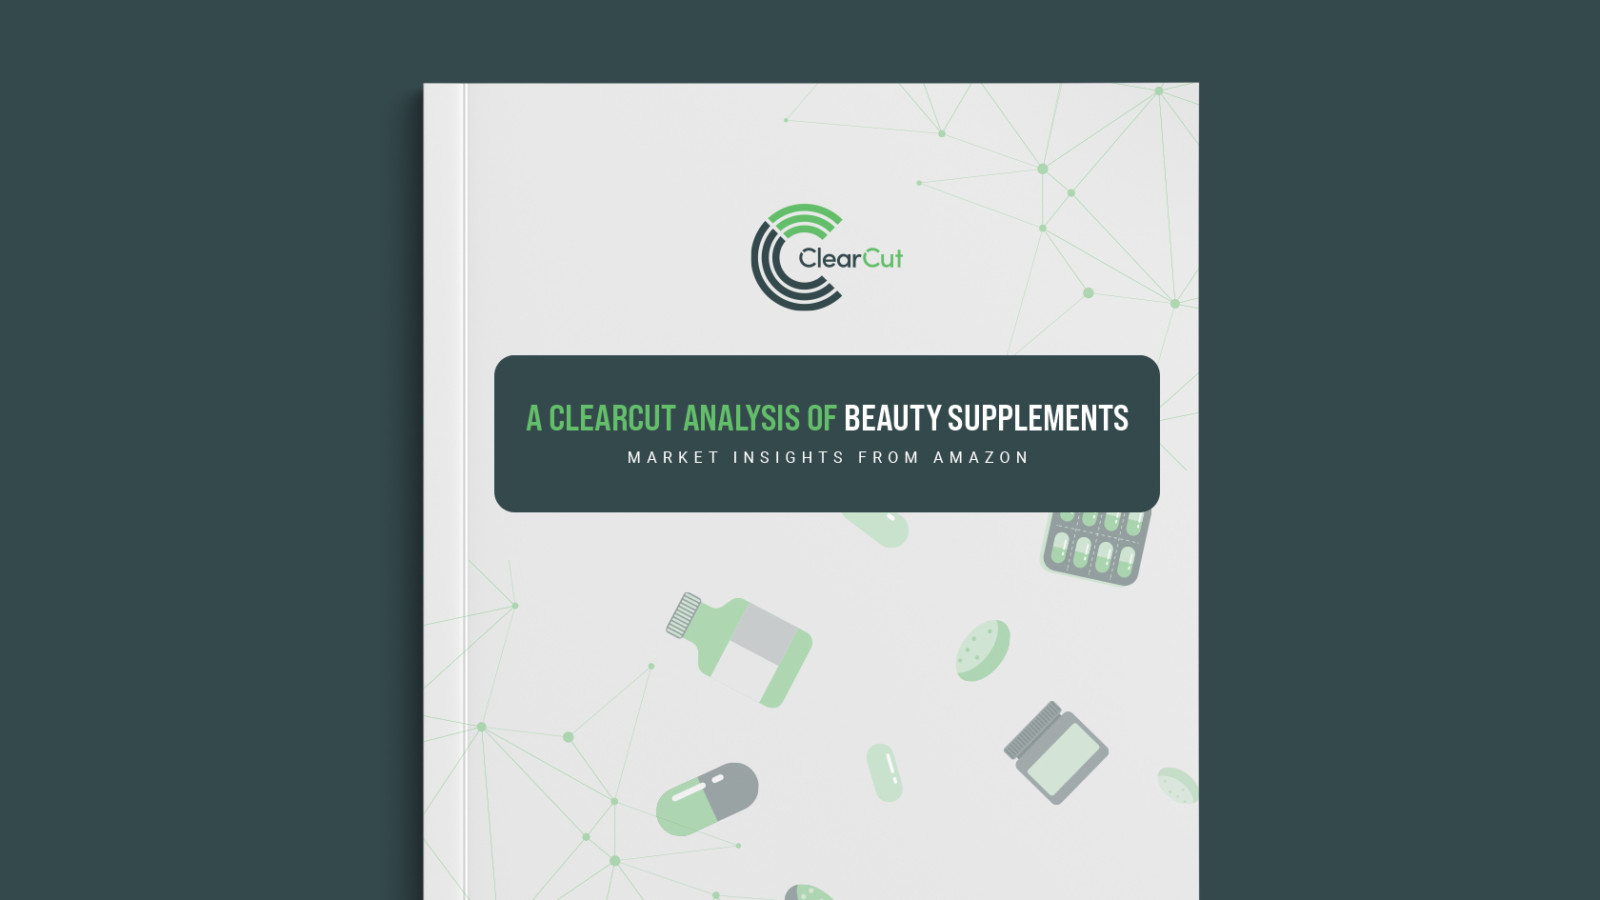 A ClearCut Analysis of Beauty Supplement Sales on Amazon